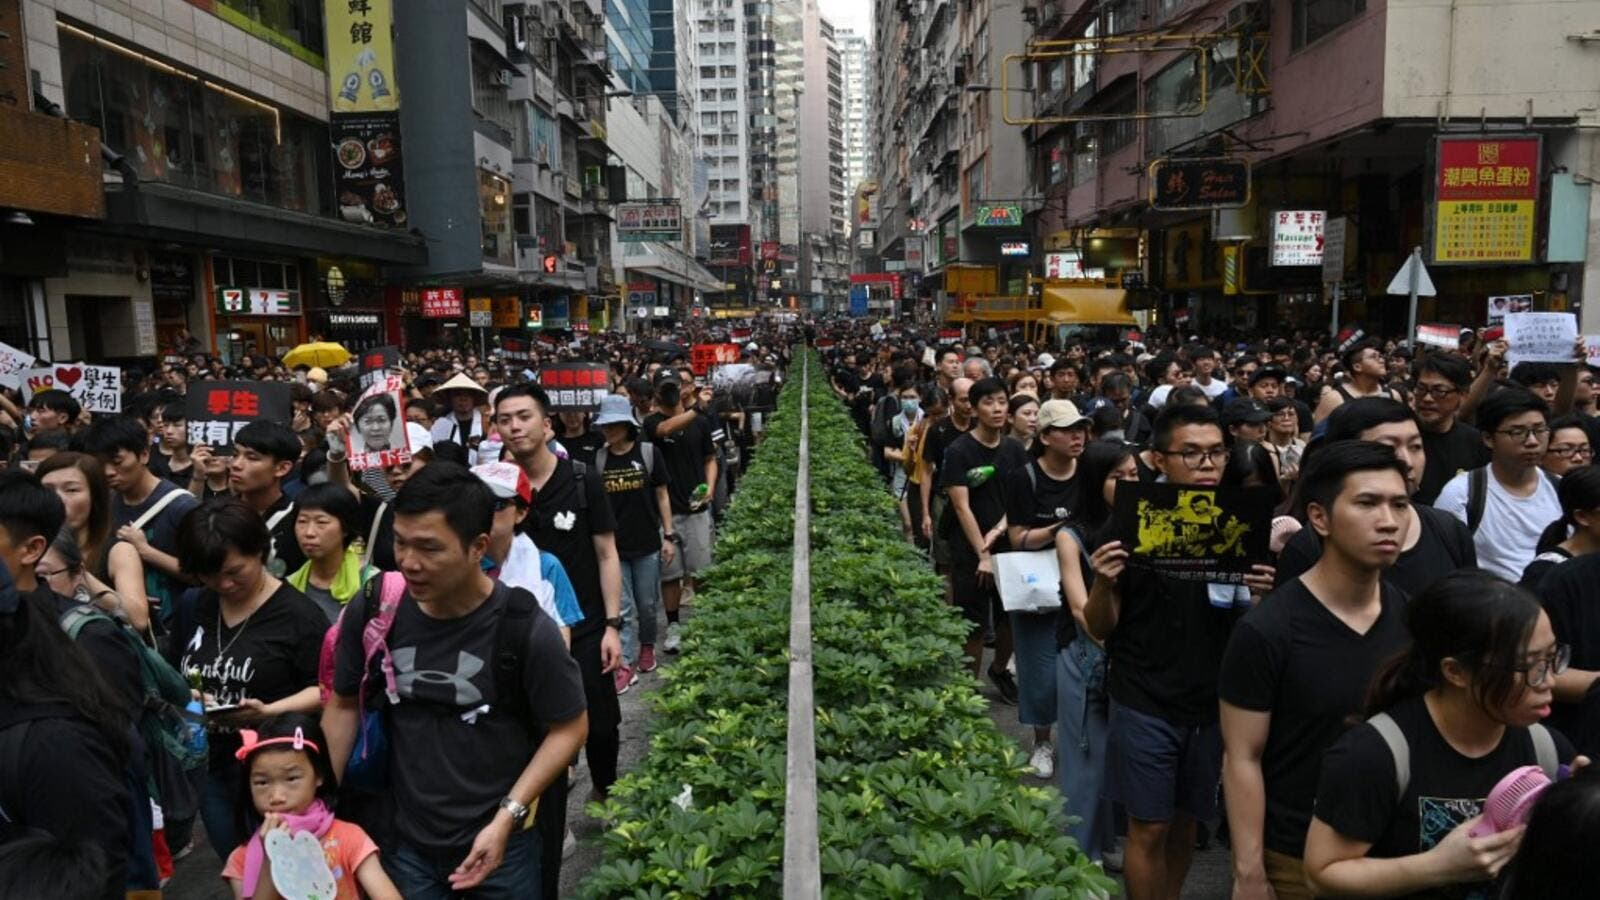 Thousands of protesters dressed in black take part in a new rally against a controversial extradition law proposal in Hong Kong on June 16, 2019. (AFP/ File Photo)